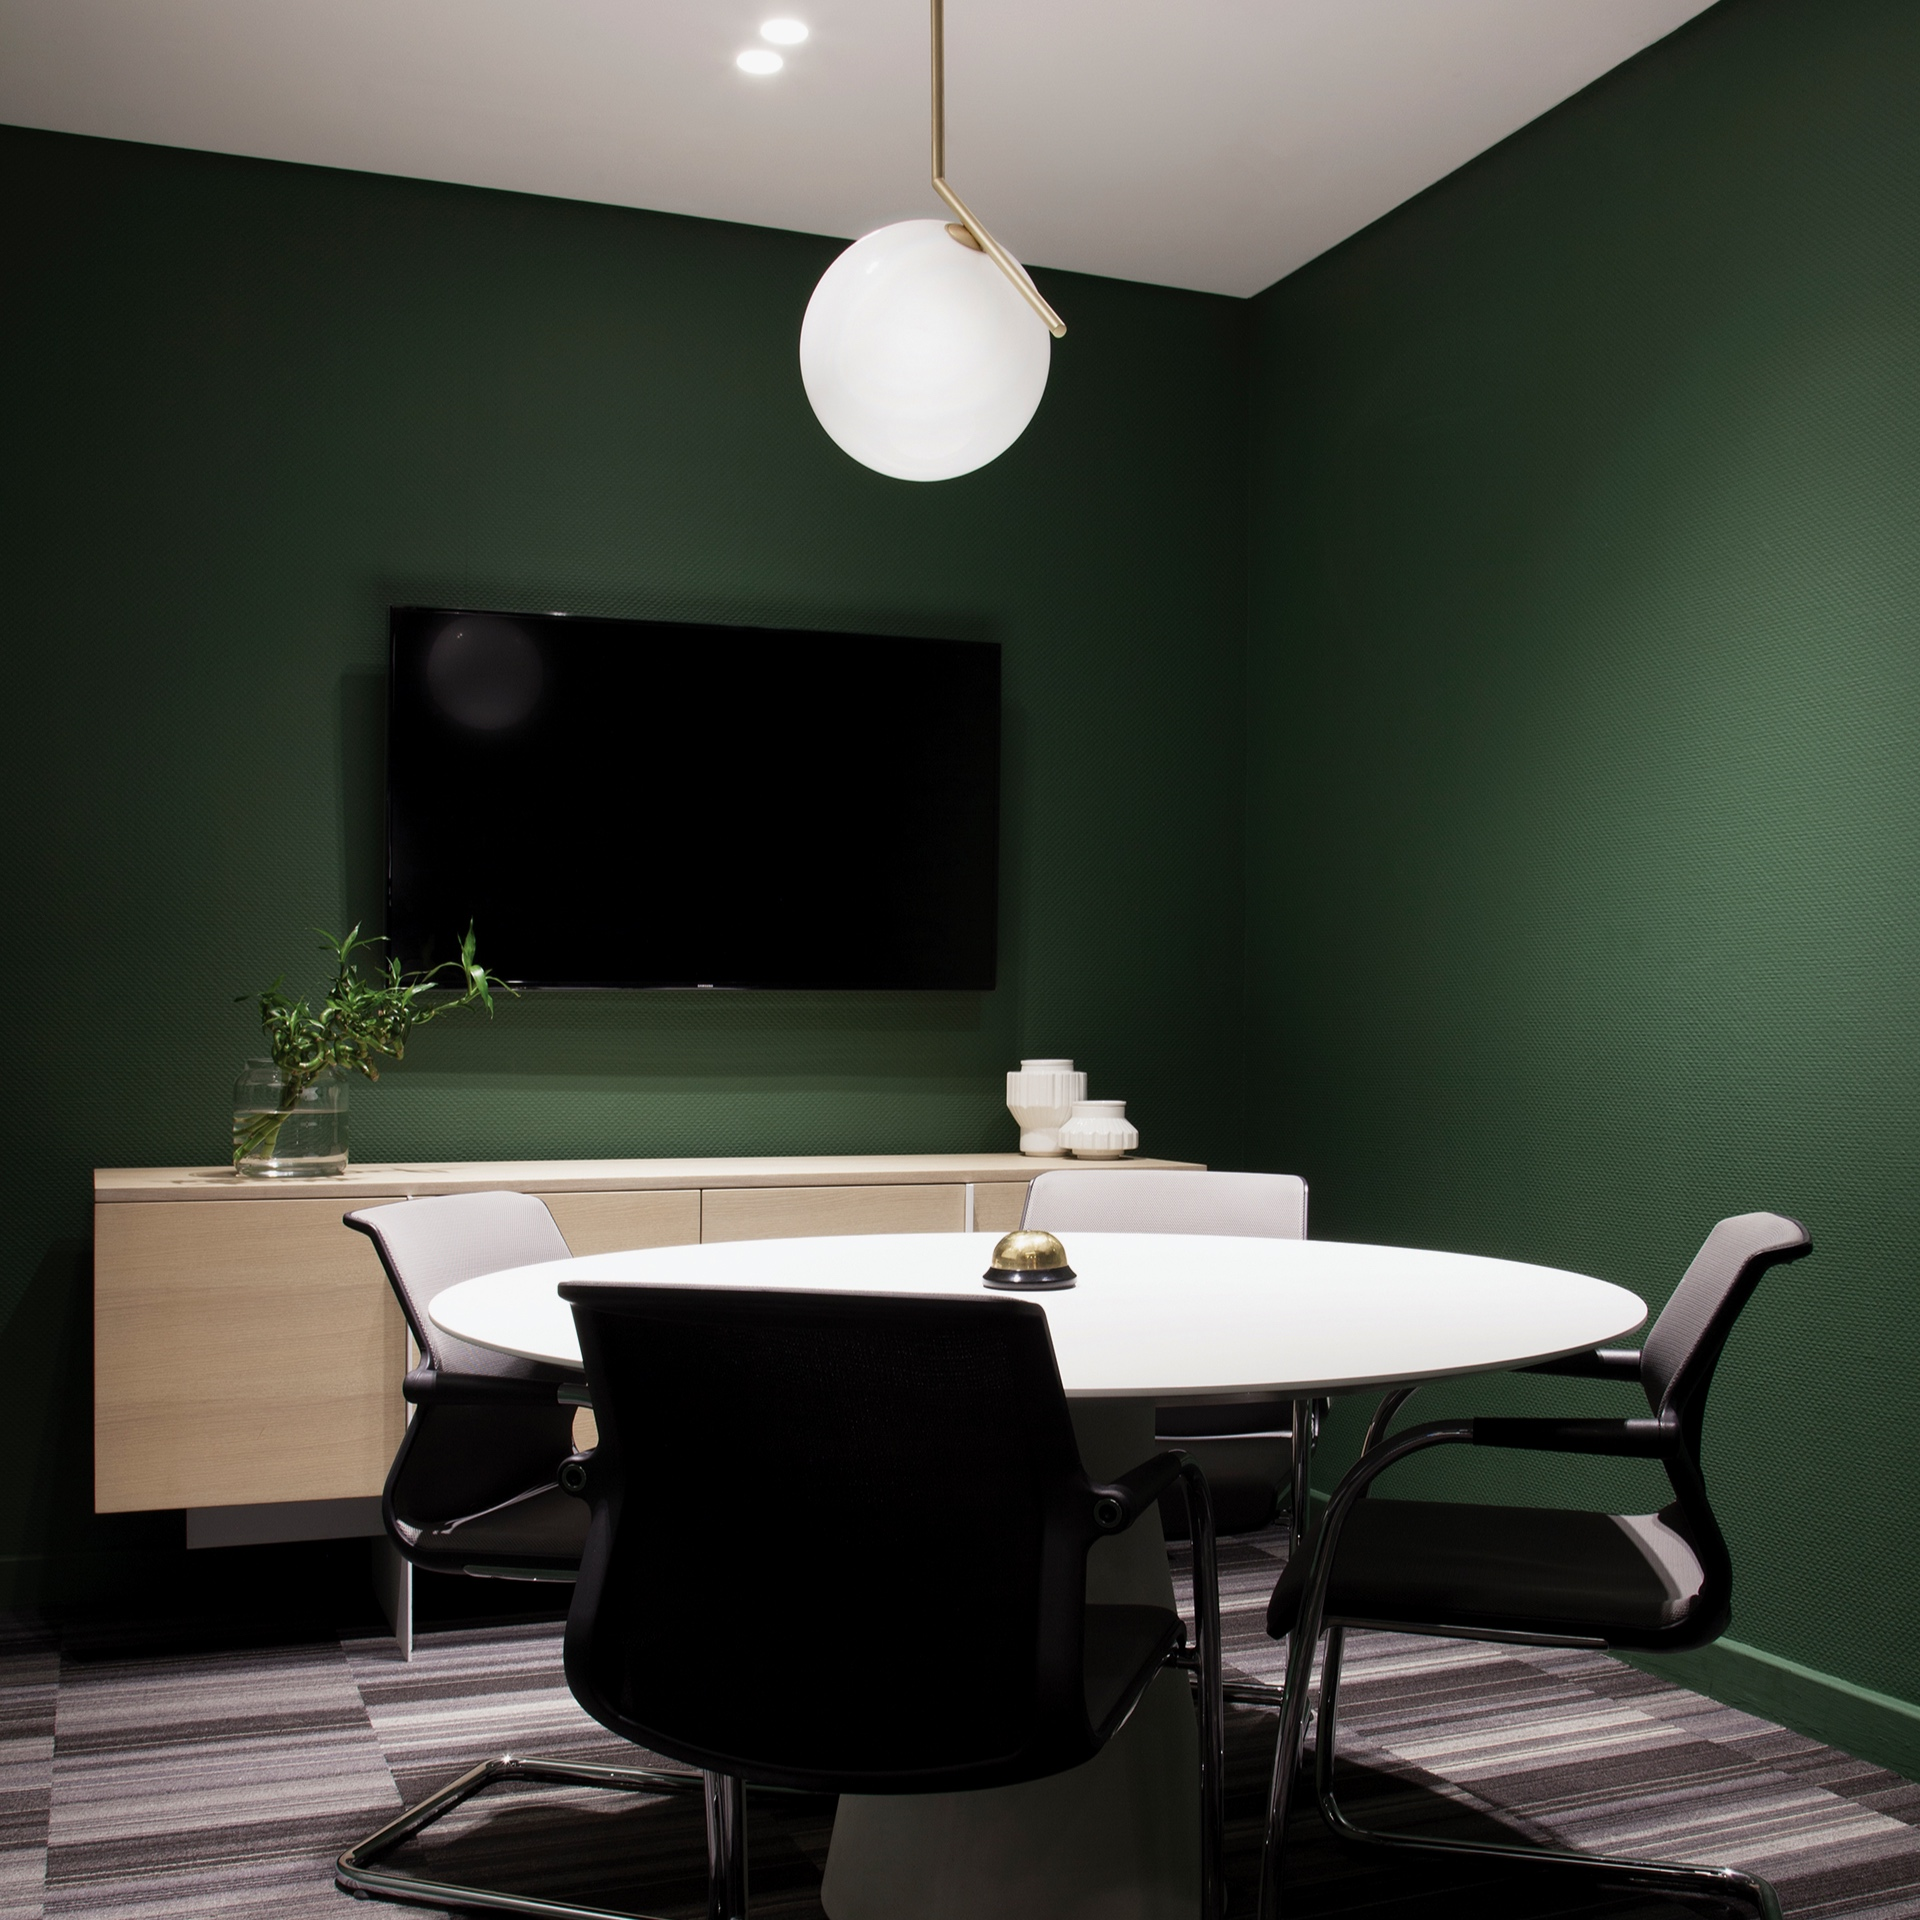 Upper Ninth Lane - A modern styled boardroom with an architectural backdrop and vibrant furnishings.